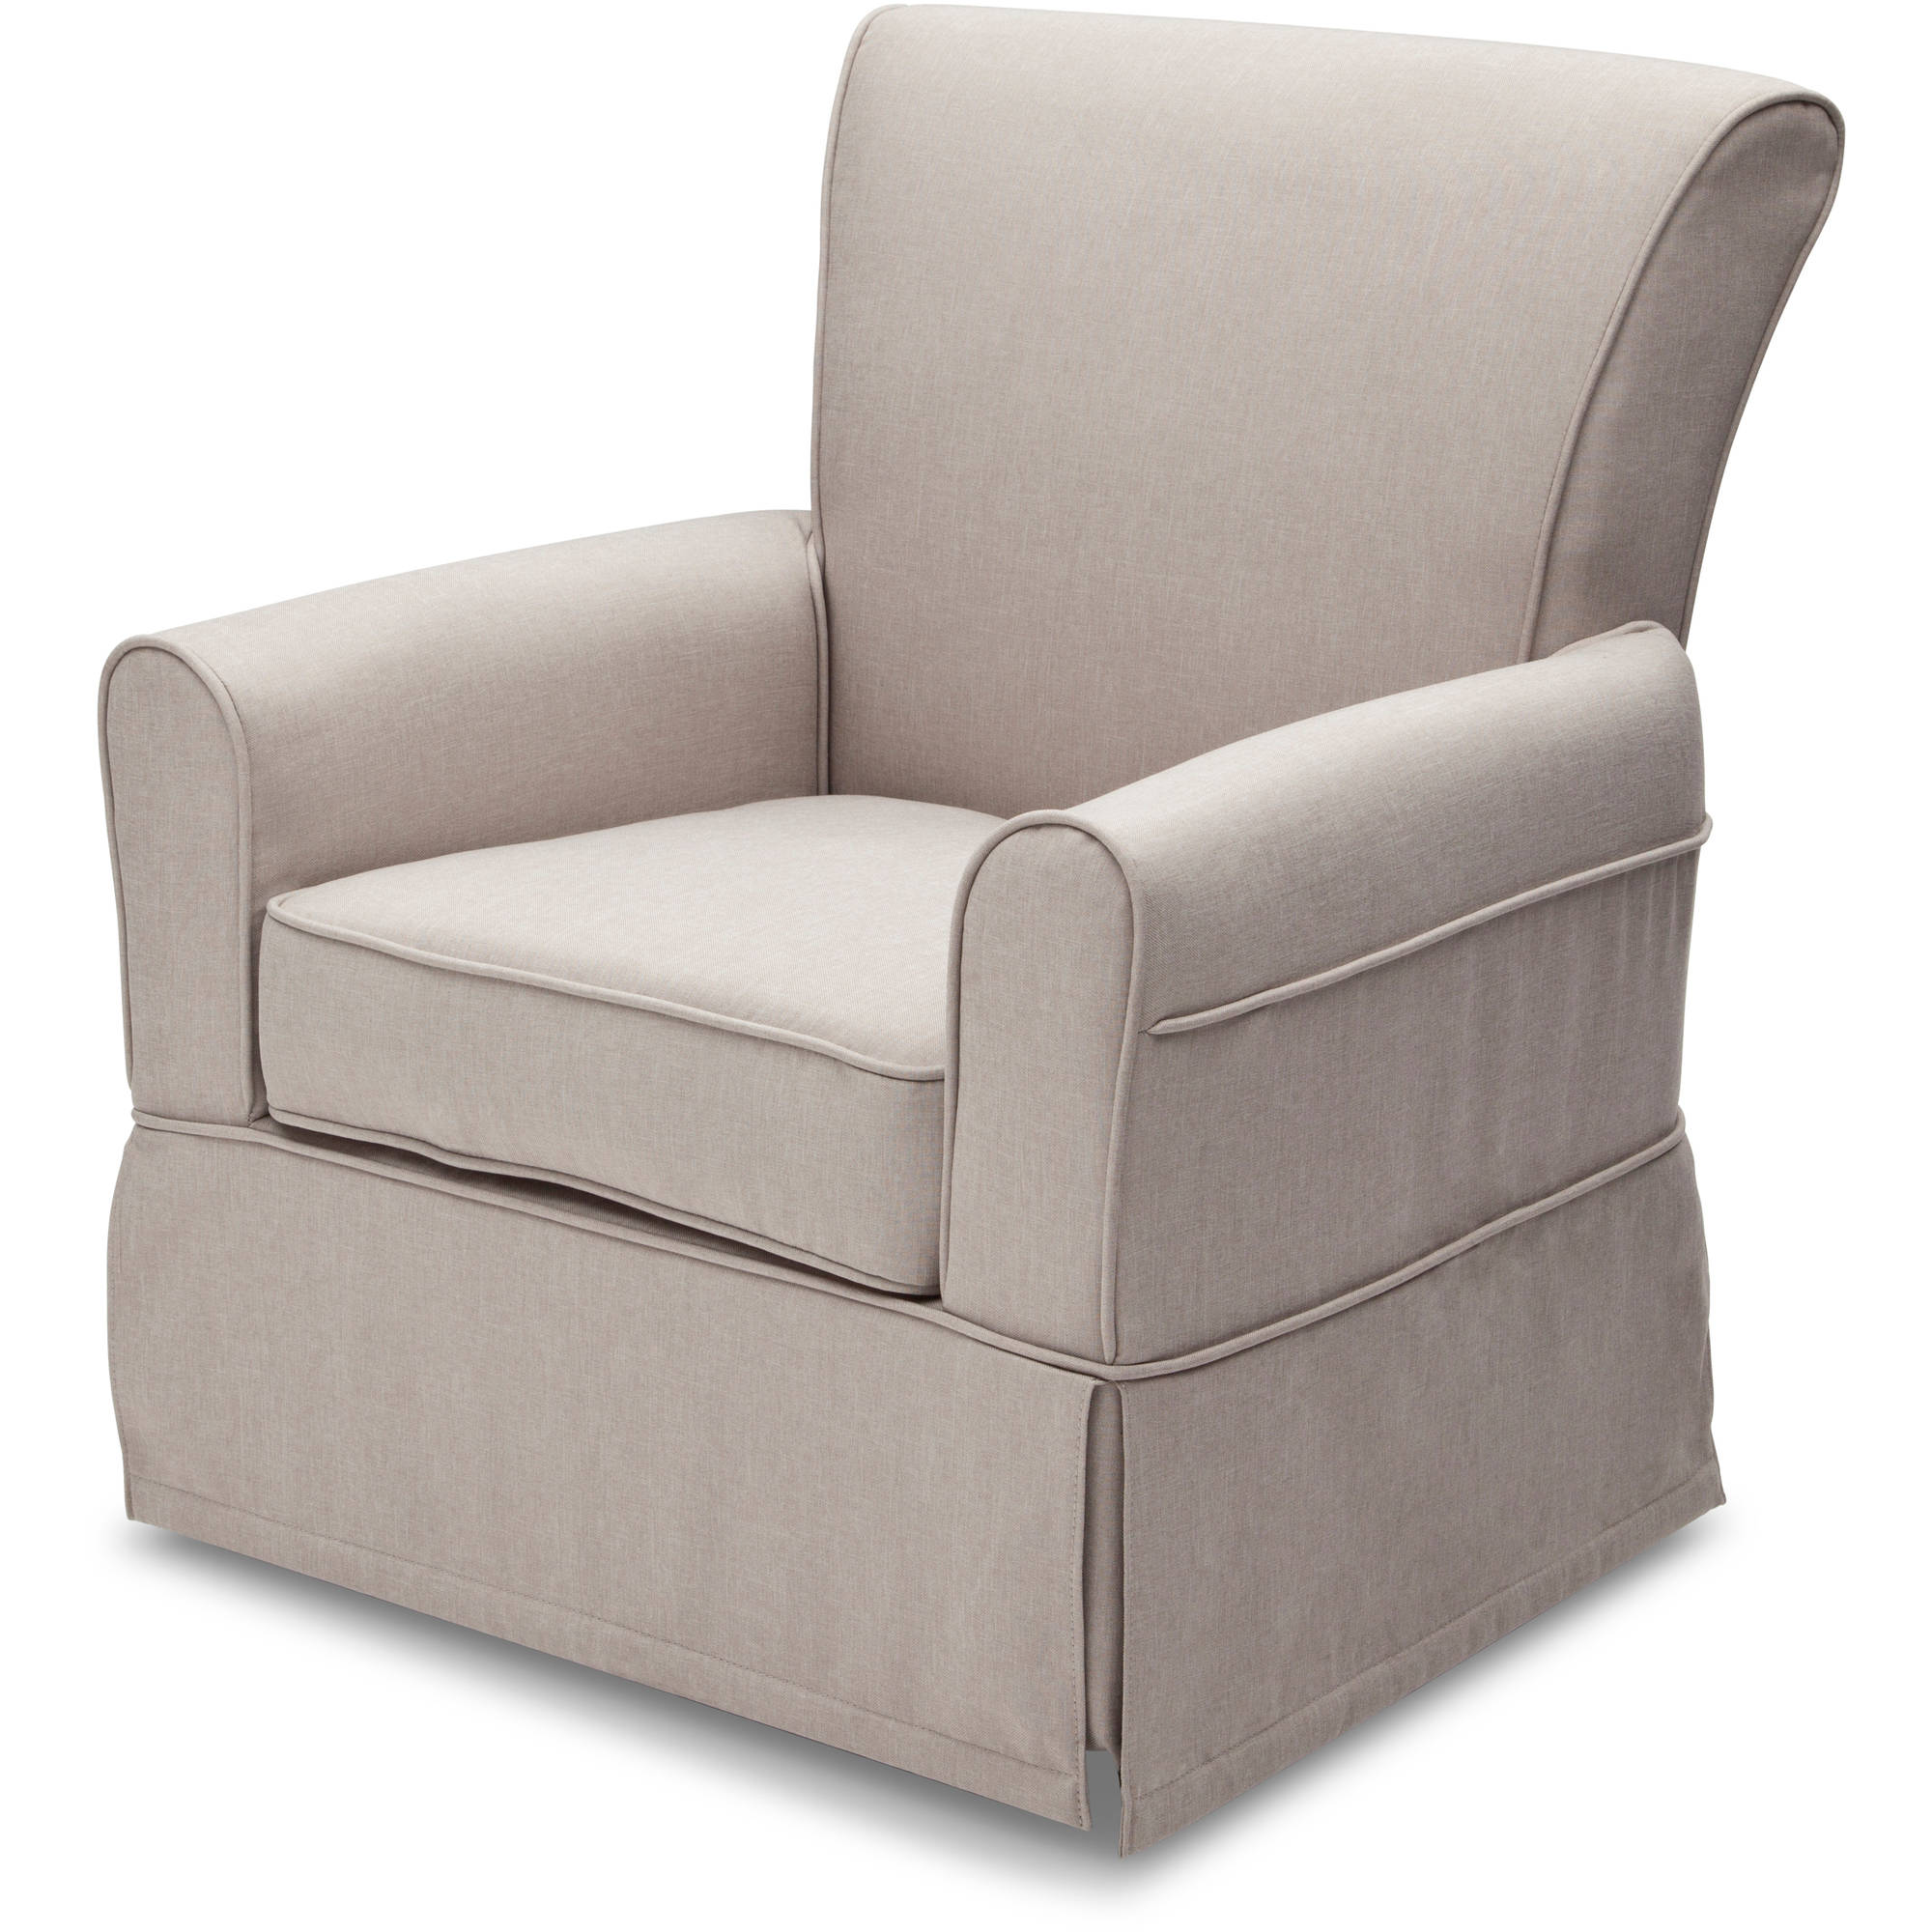 Storytime Chair Delta Children Epic Nursery Glider Swivel Rocker Chair Taupe